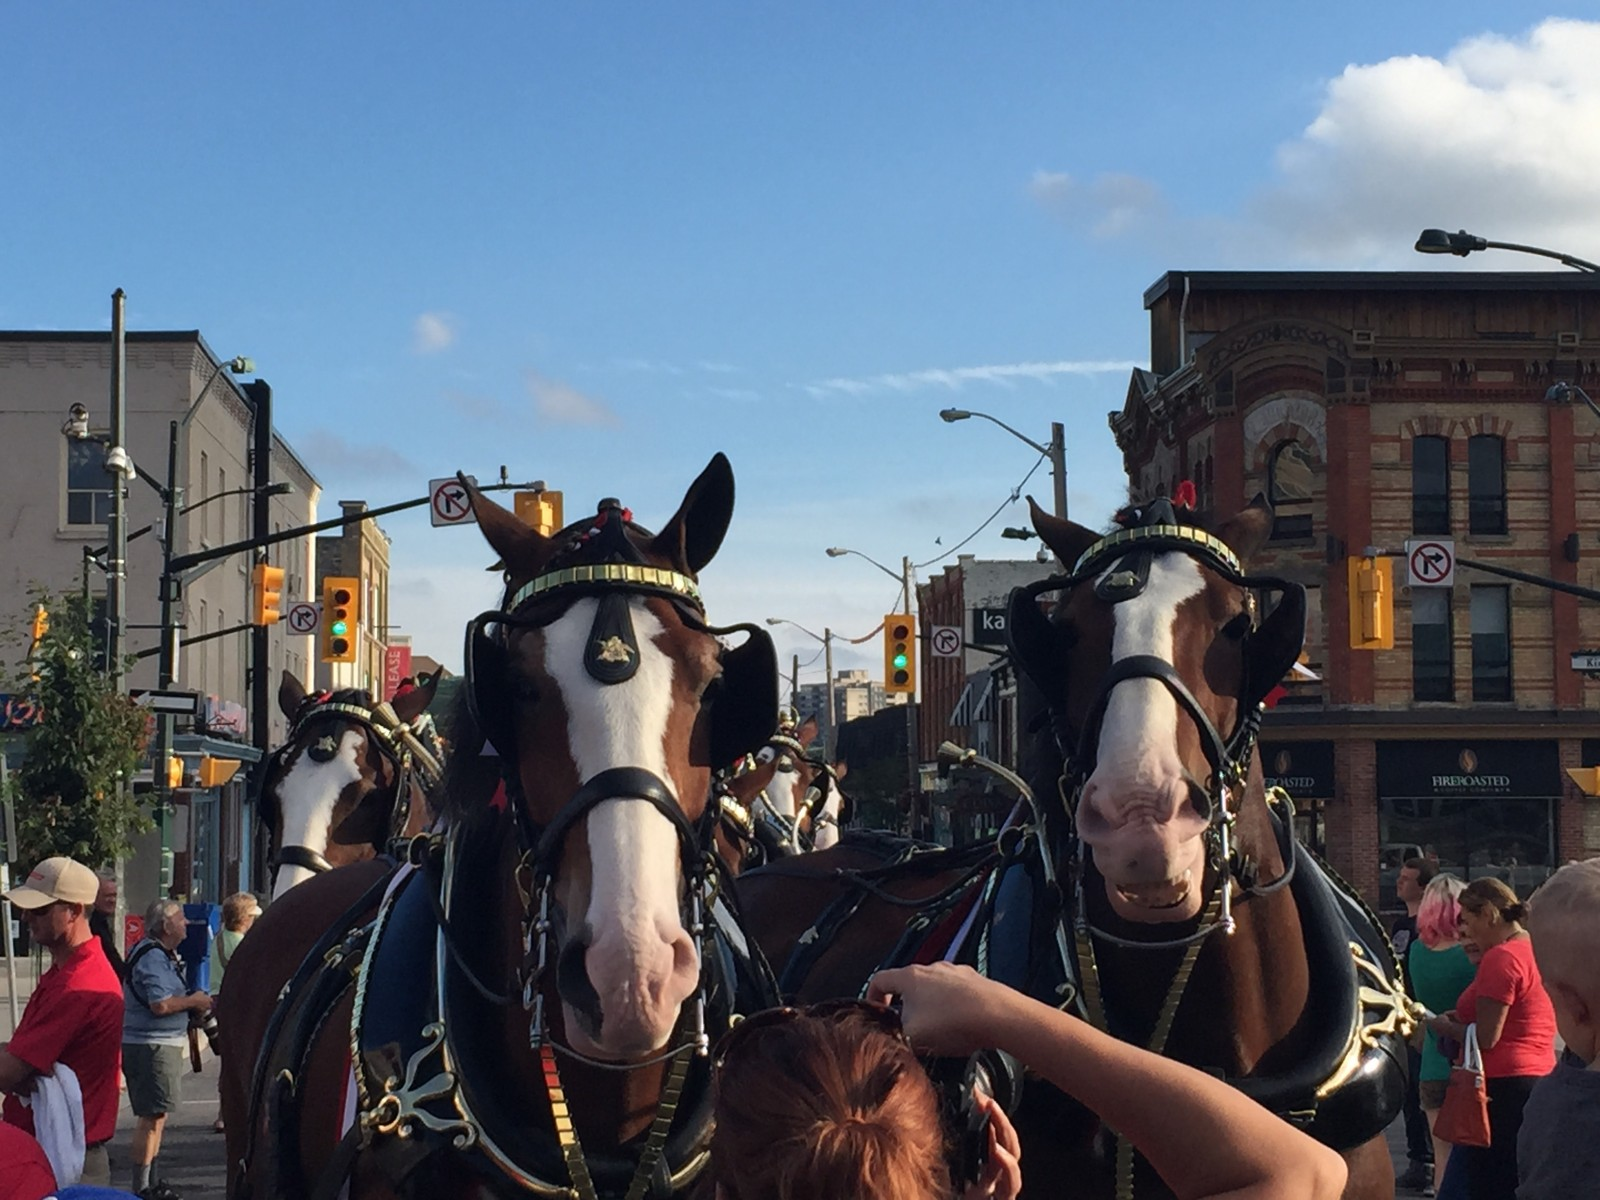 The Budweiser Clydesdale's make an appearance in London